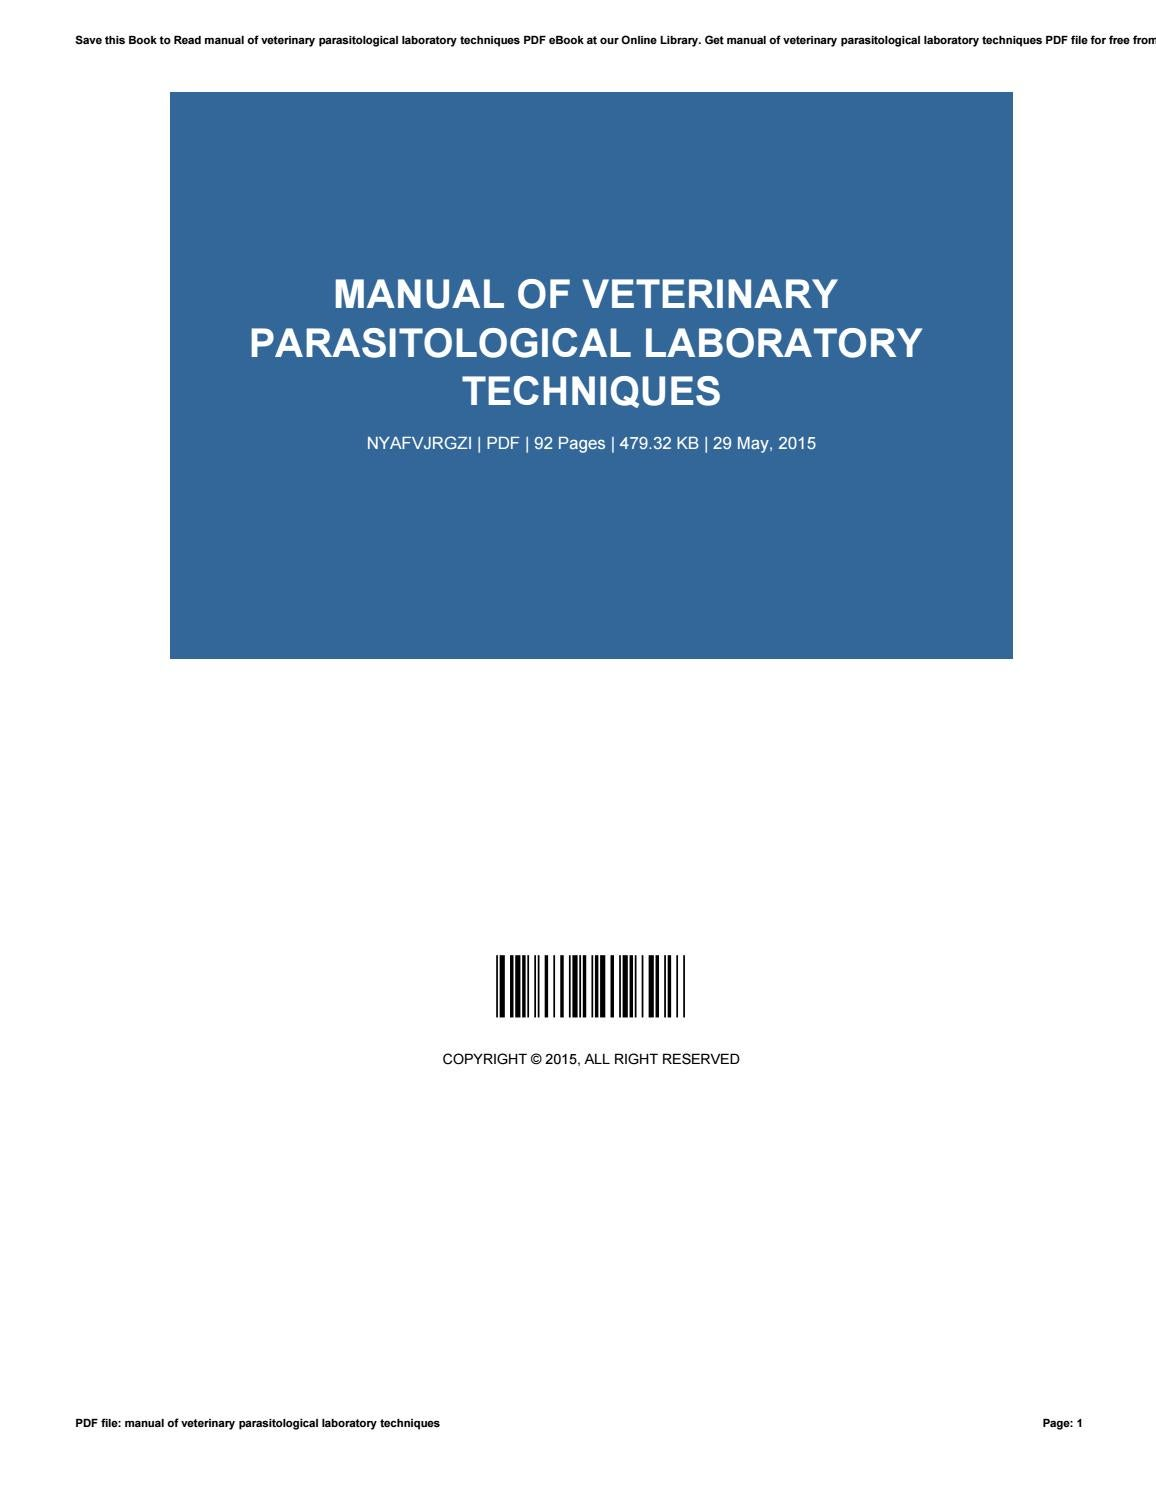 Parasitology for veterinarians ebook array manual of veterinary parasitological laboratory techniques various rh fandeluxe Image collections